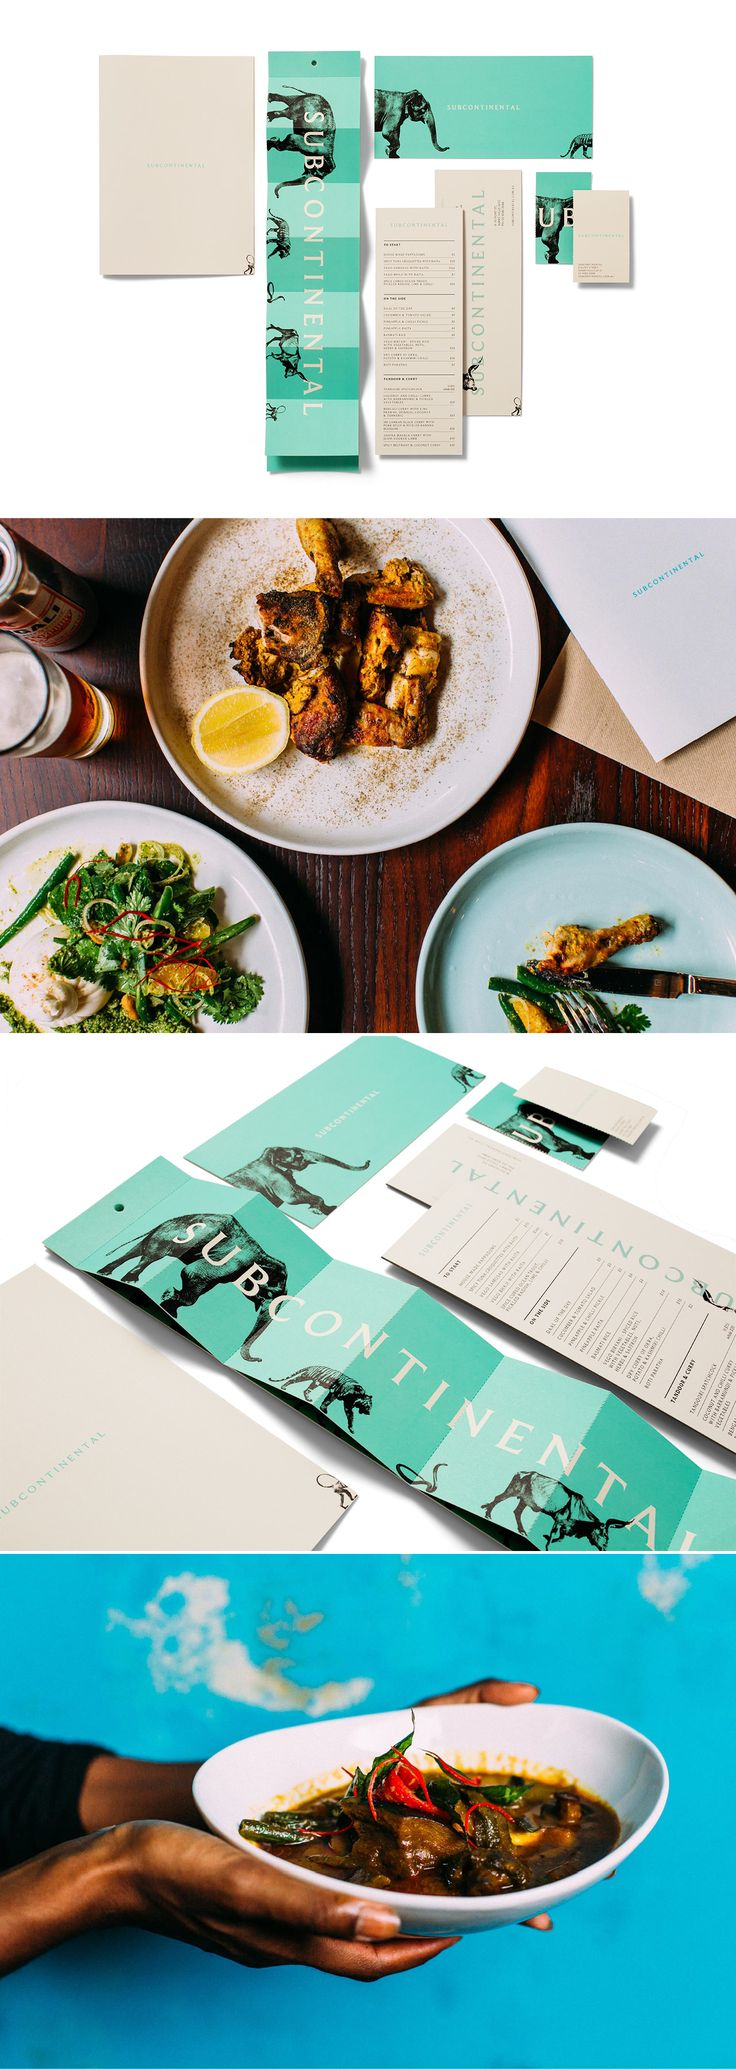 Subcontinental by Ascender #brand #branding #identity #design #visual #graphic #logo #logotype #print #editorial #publication #brochure #report #collateral #magazine #typography #layout #spread #spreads #poster #book #booklet #annual #review #hospitality #restaurant #indian #pottspoint #india